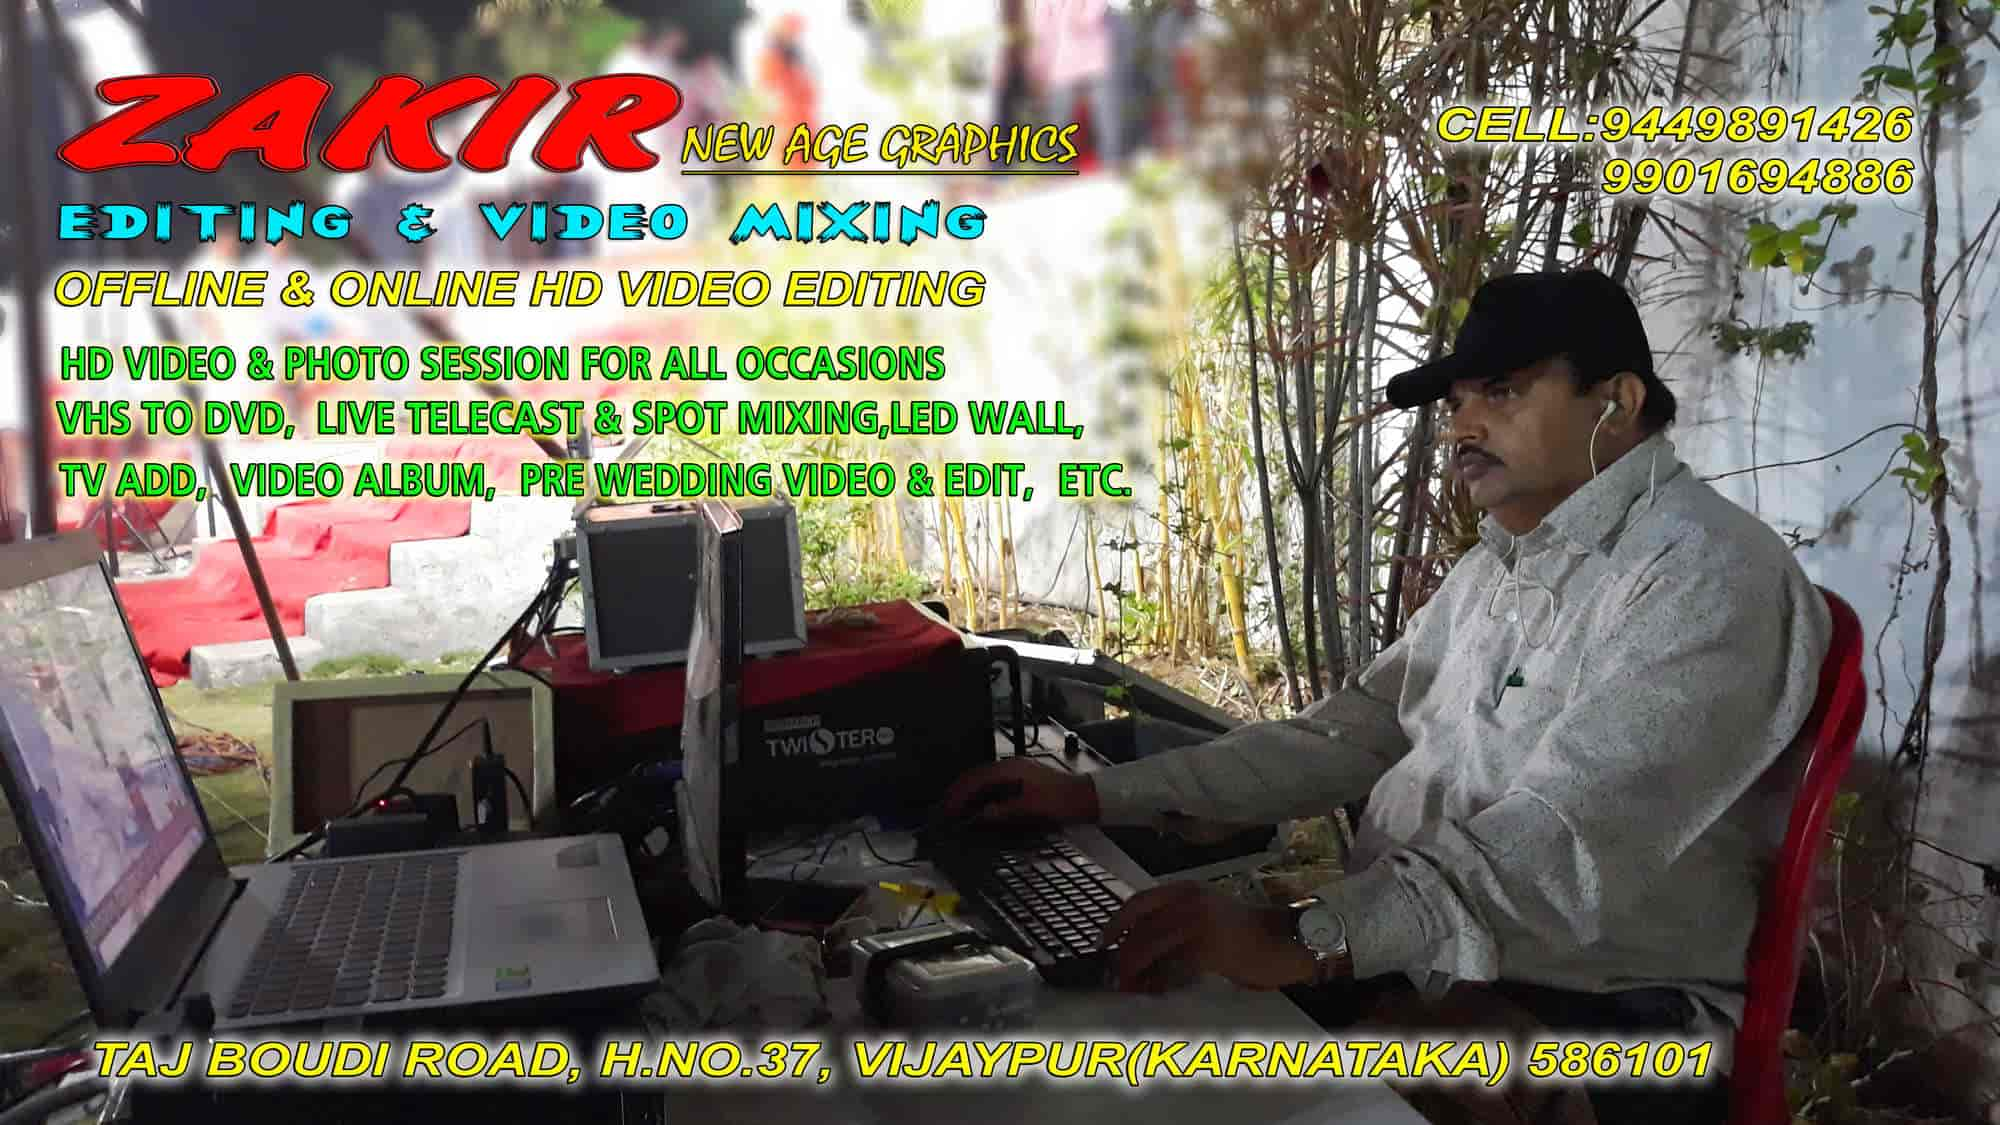 Zakir Editing & Video Mixing, Bijapur - Video Shooting